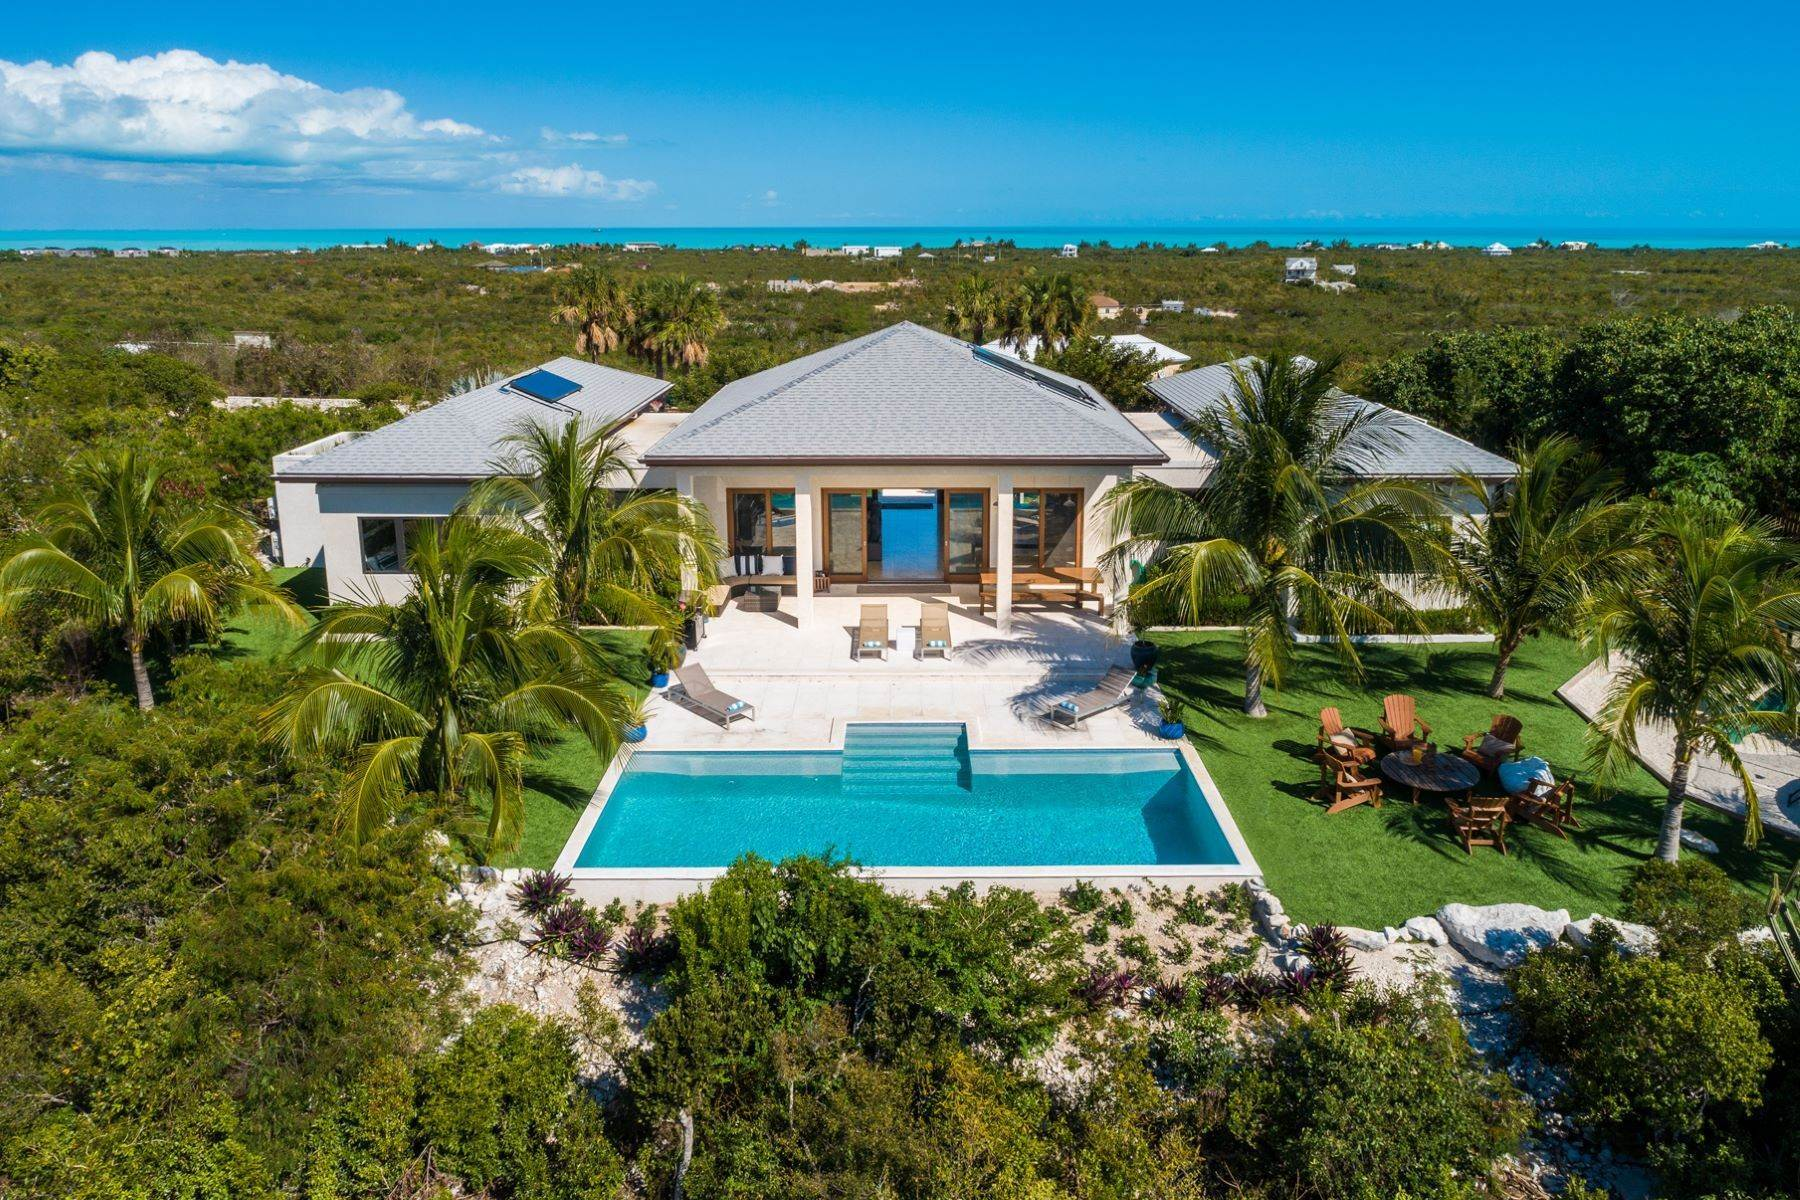 Single Family Homes for Sale at Long Bay, Providenciales Turks And Caicos Islands